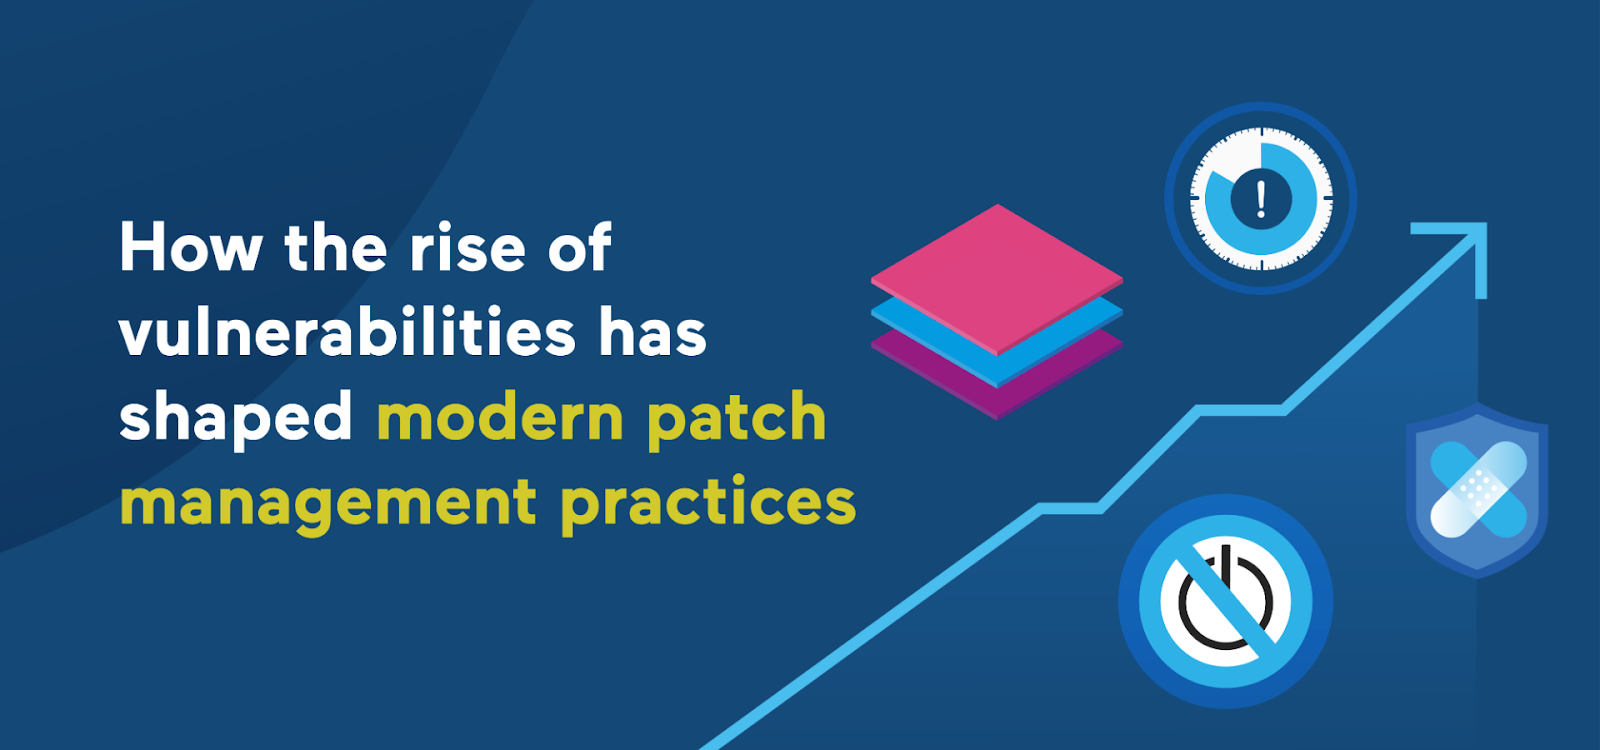 /how-the-rise-of-vulnerabilities-has-shaped-modern-patch-management-practices-xy113198 feature image